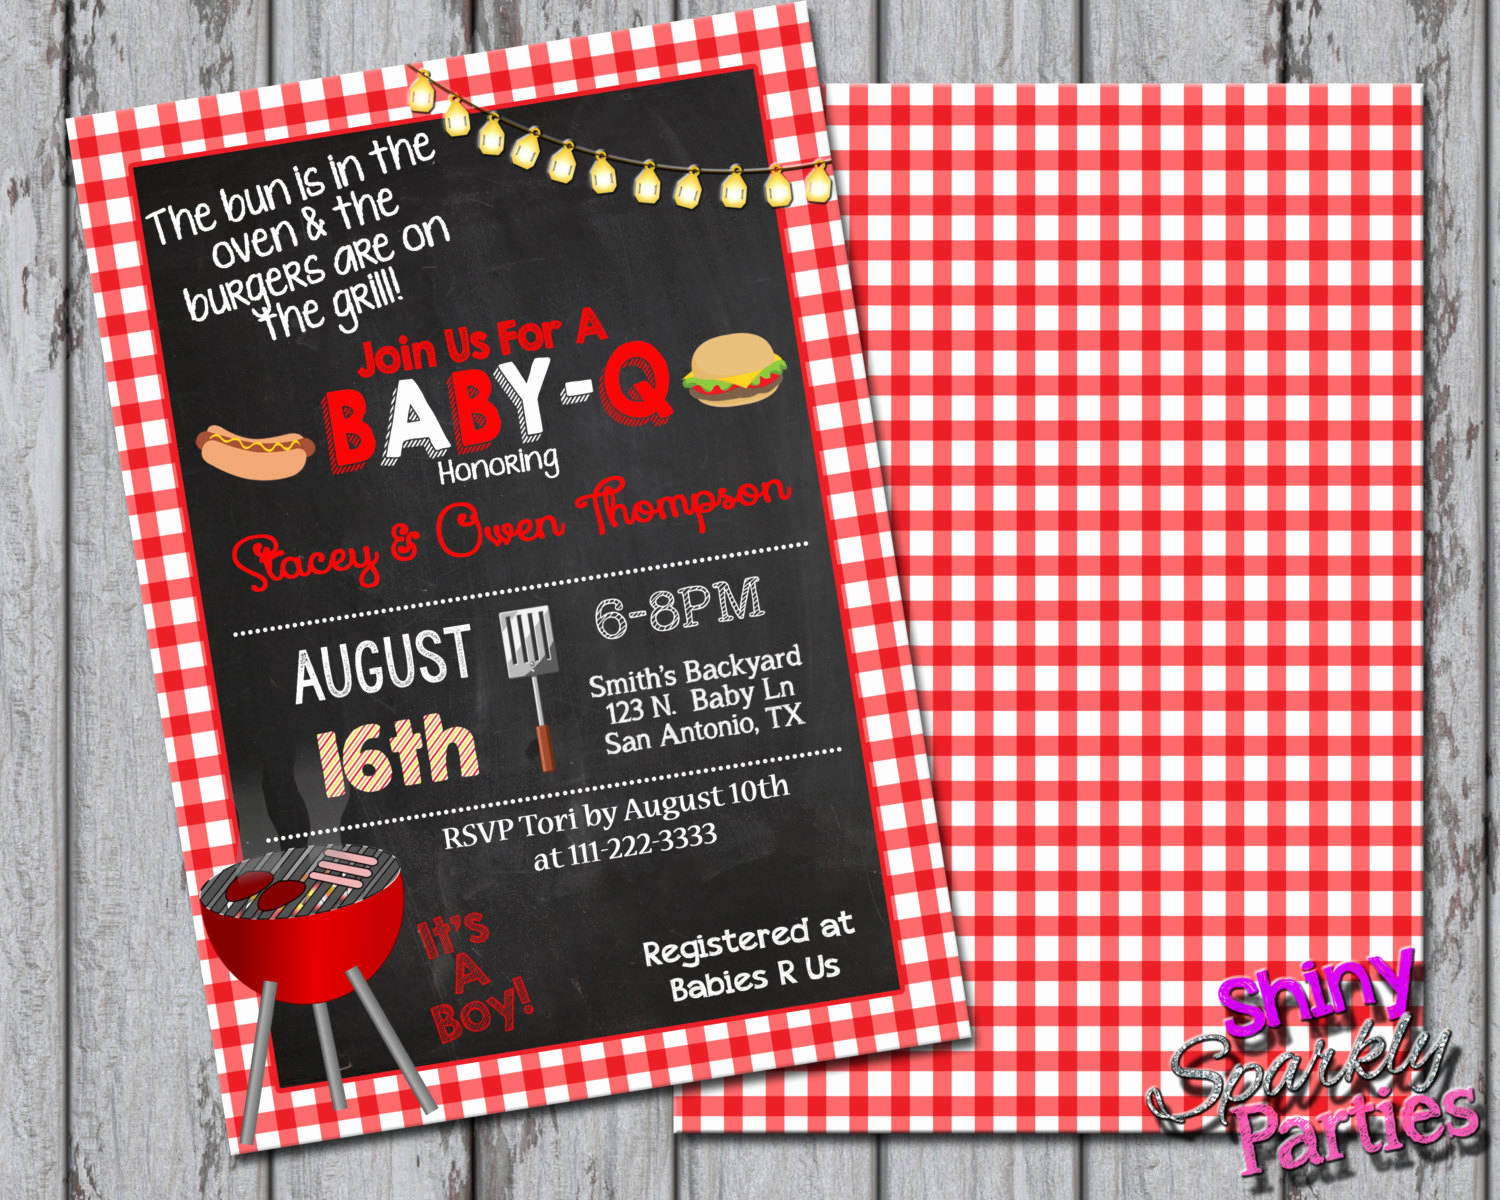 Baby Shower Bbq Invitation Lovely Baby Q Shower Invitations Bbq Baby Shower